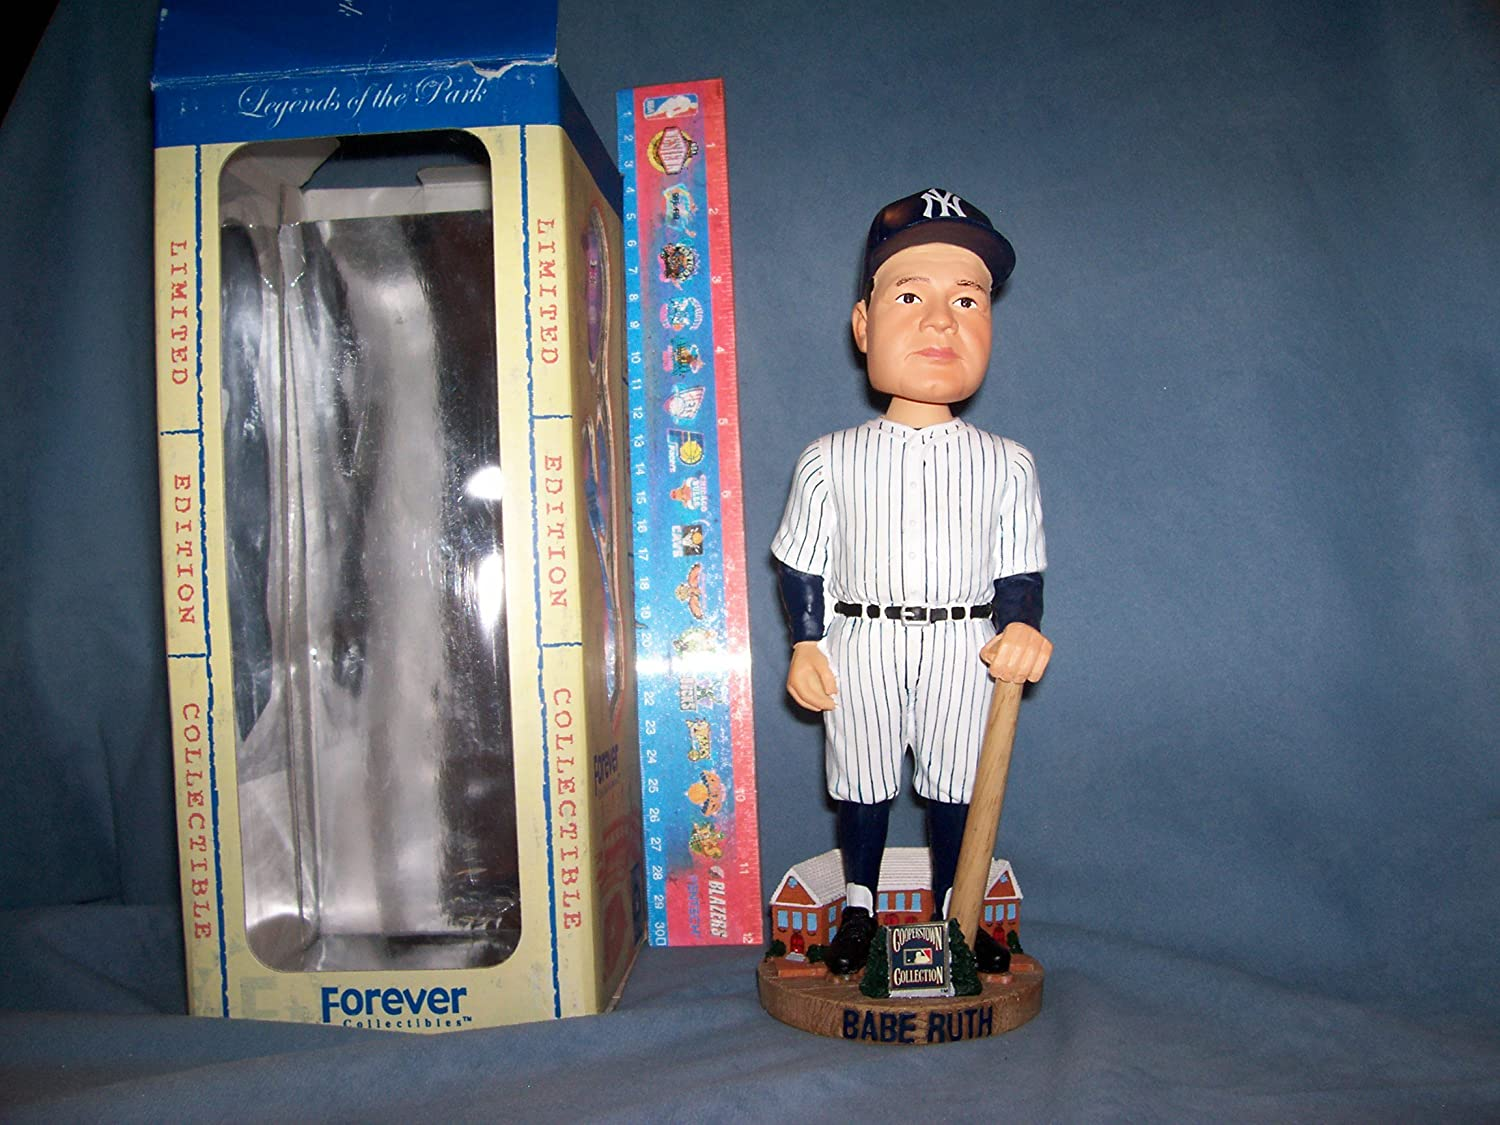 2003 FOREVER BABE RUTH BOBBLEHEAD N.Y. YANKEES HOME UNIFORM MINT#'d 5714 Forever Collectibles